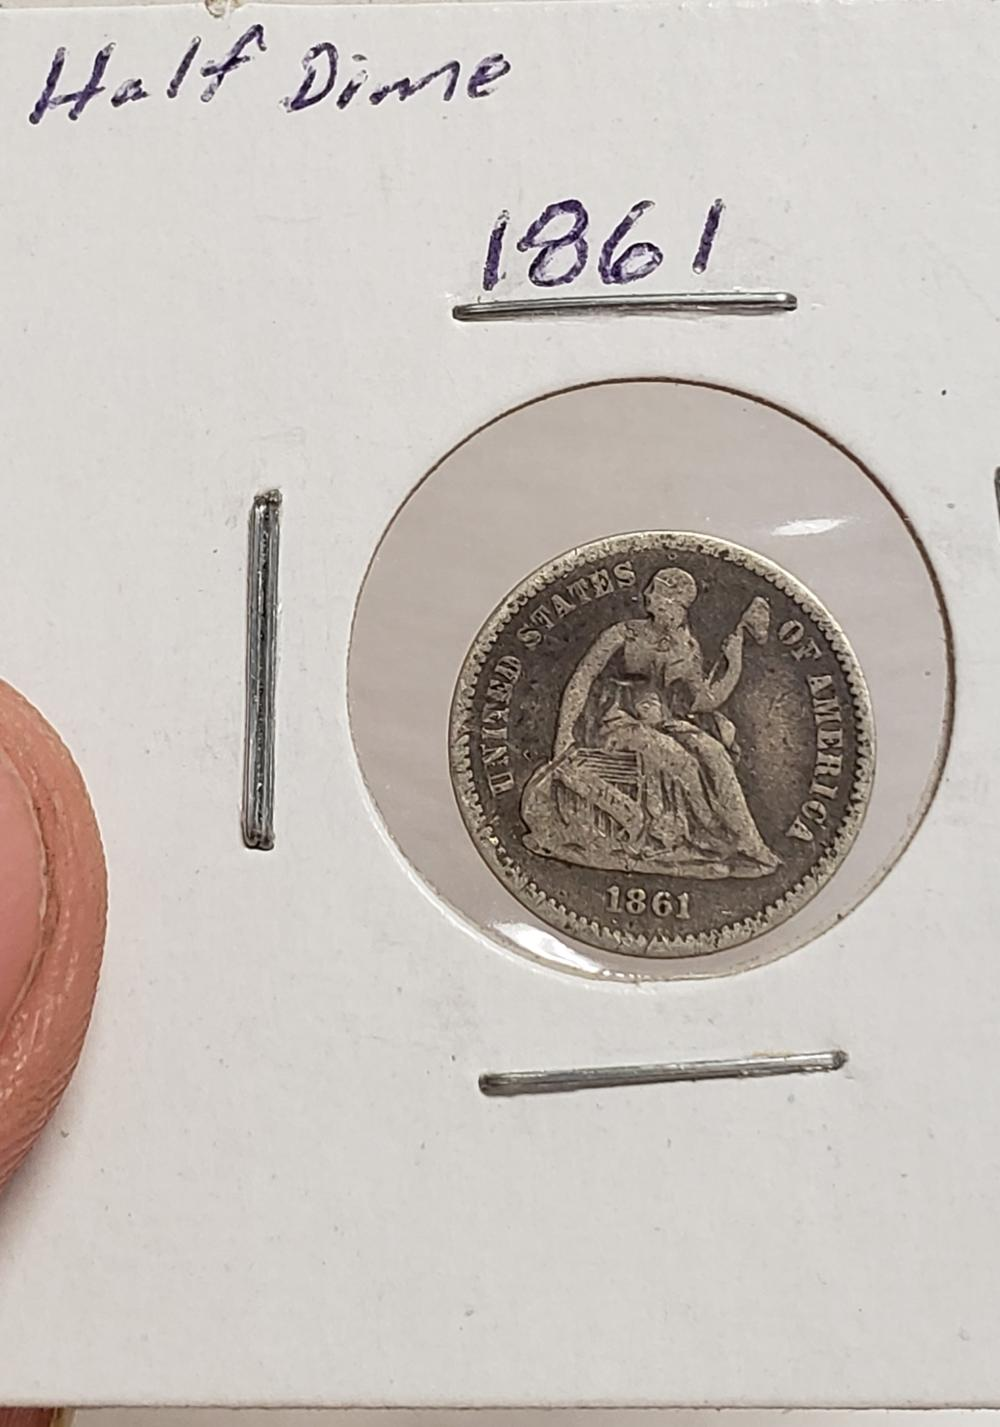 1861 Seated Liberty Half Dime silver